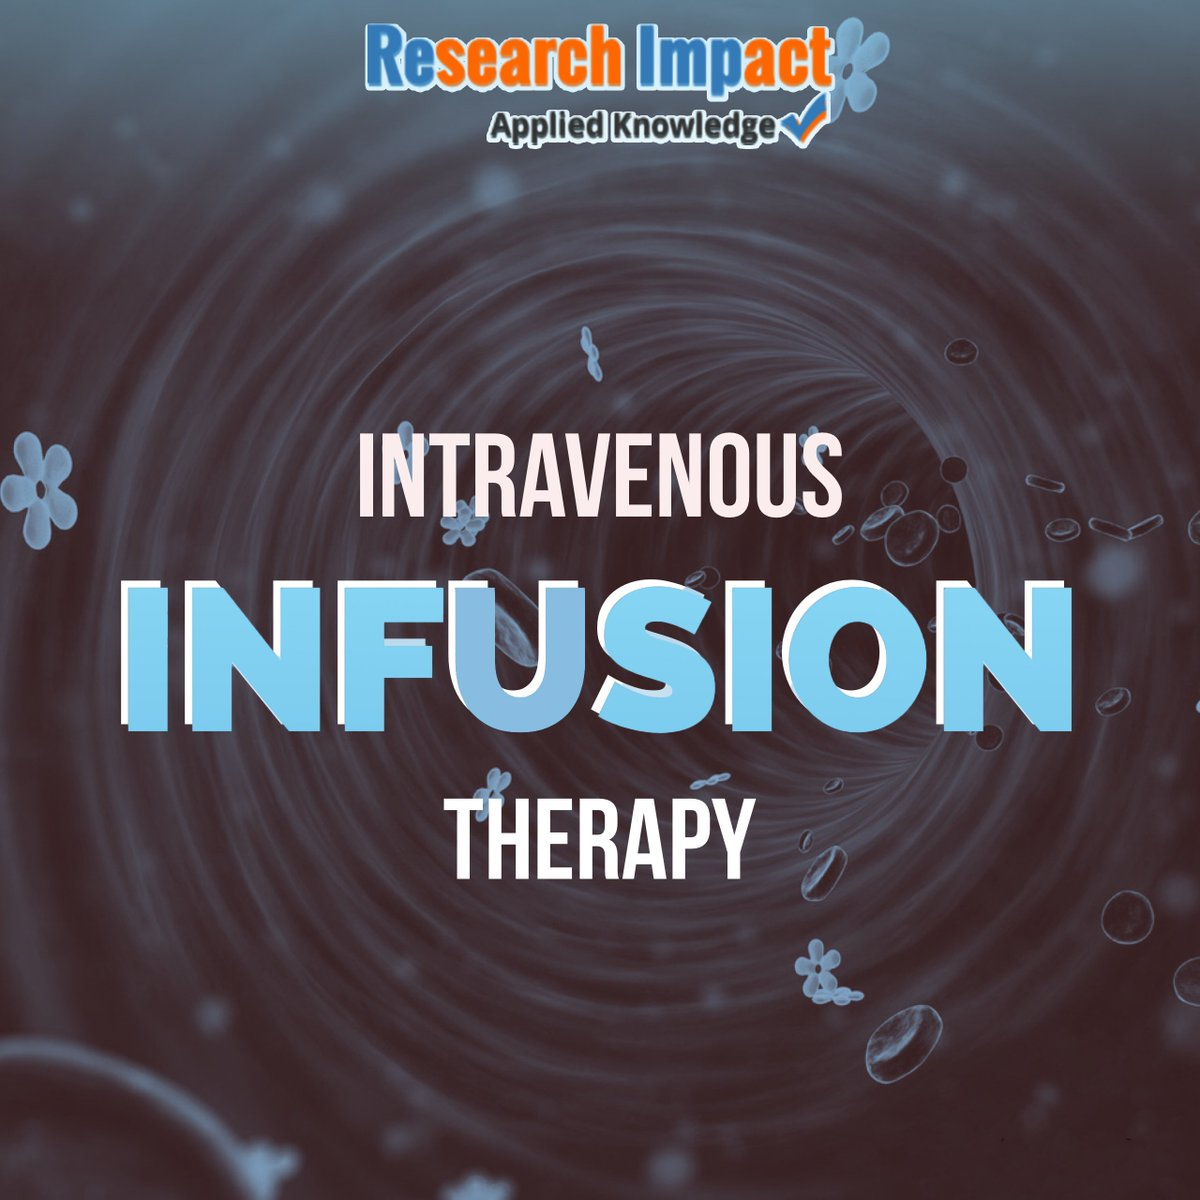 Intravenous Infusion Therapy #IVT #Therapy #ResearchImpact<br>http://pic.twitter.com/mp2bFLv5hl